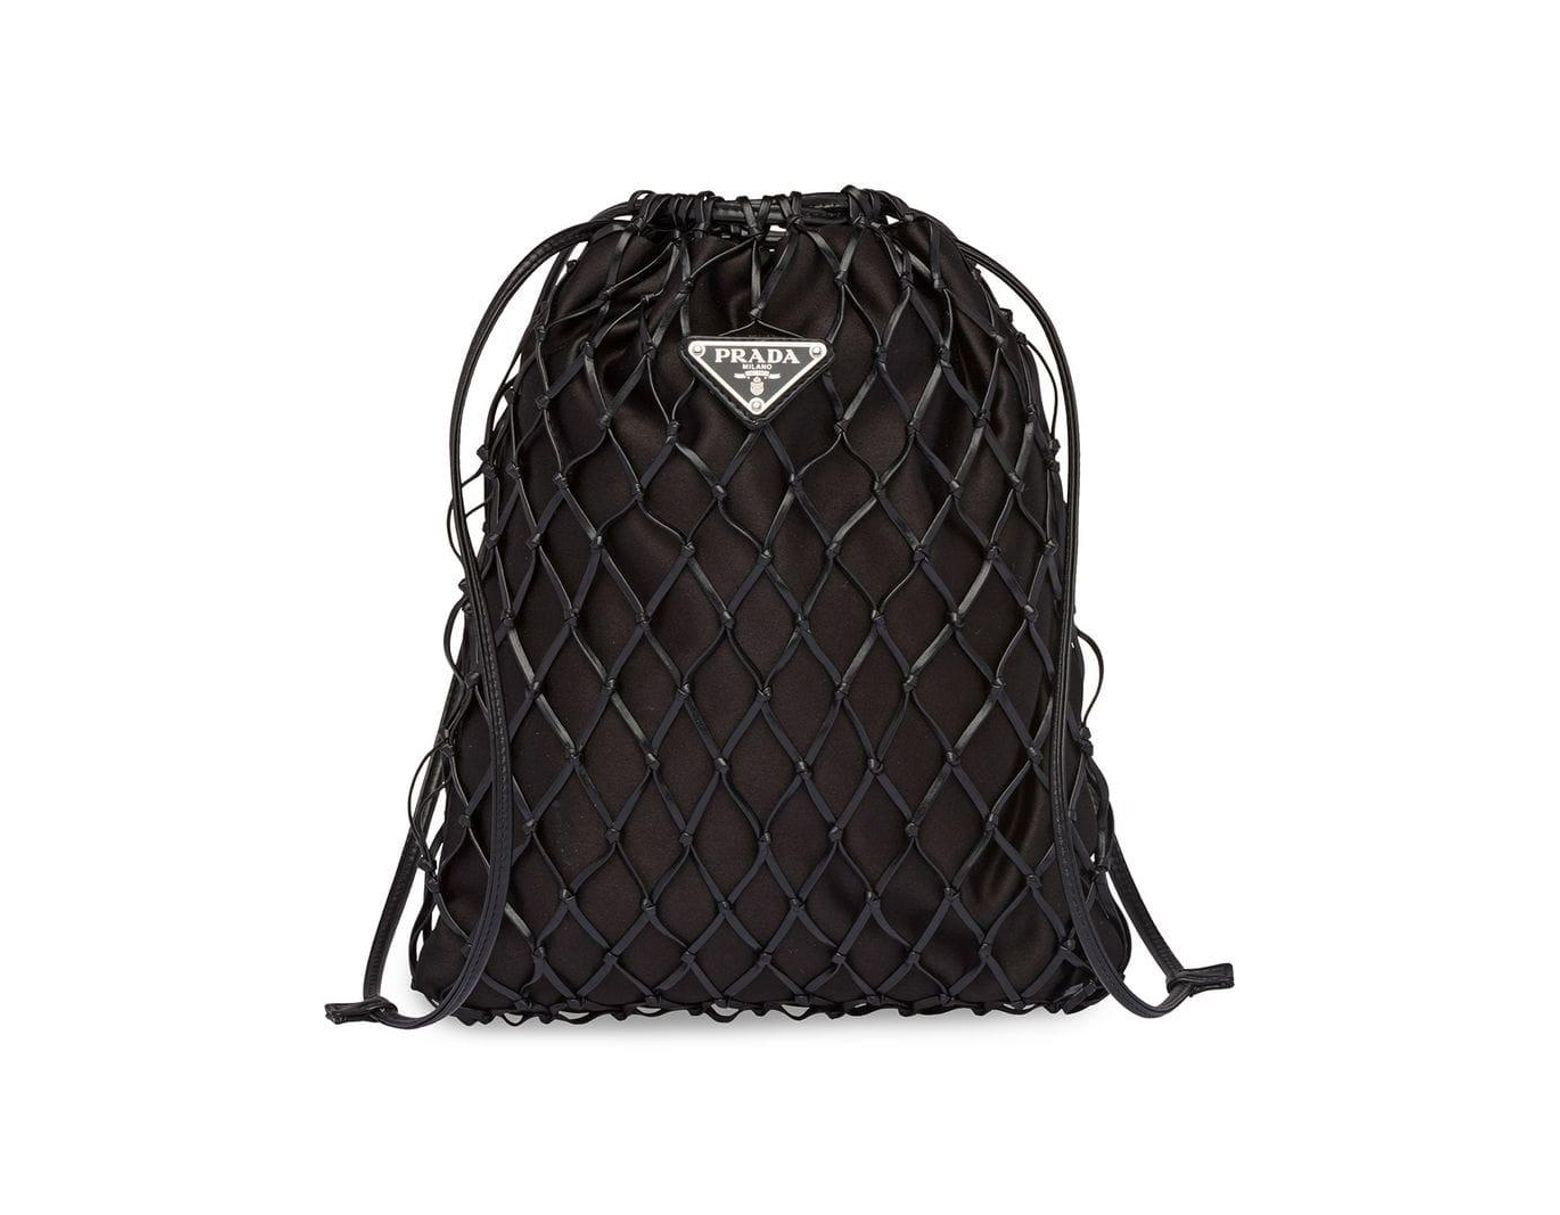 a17cf974c0f29f Prada Net Crossbody Bag in Black - Lyst